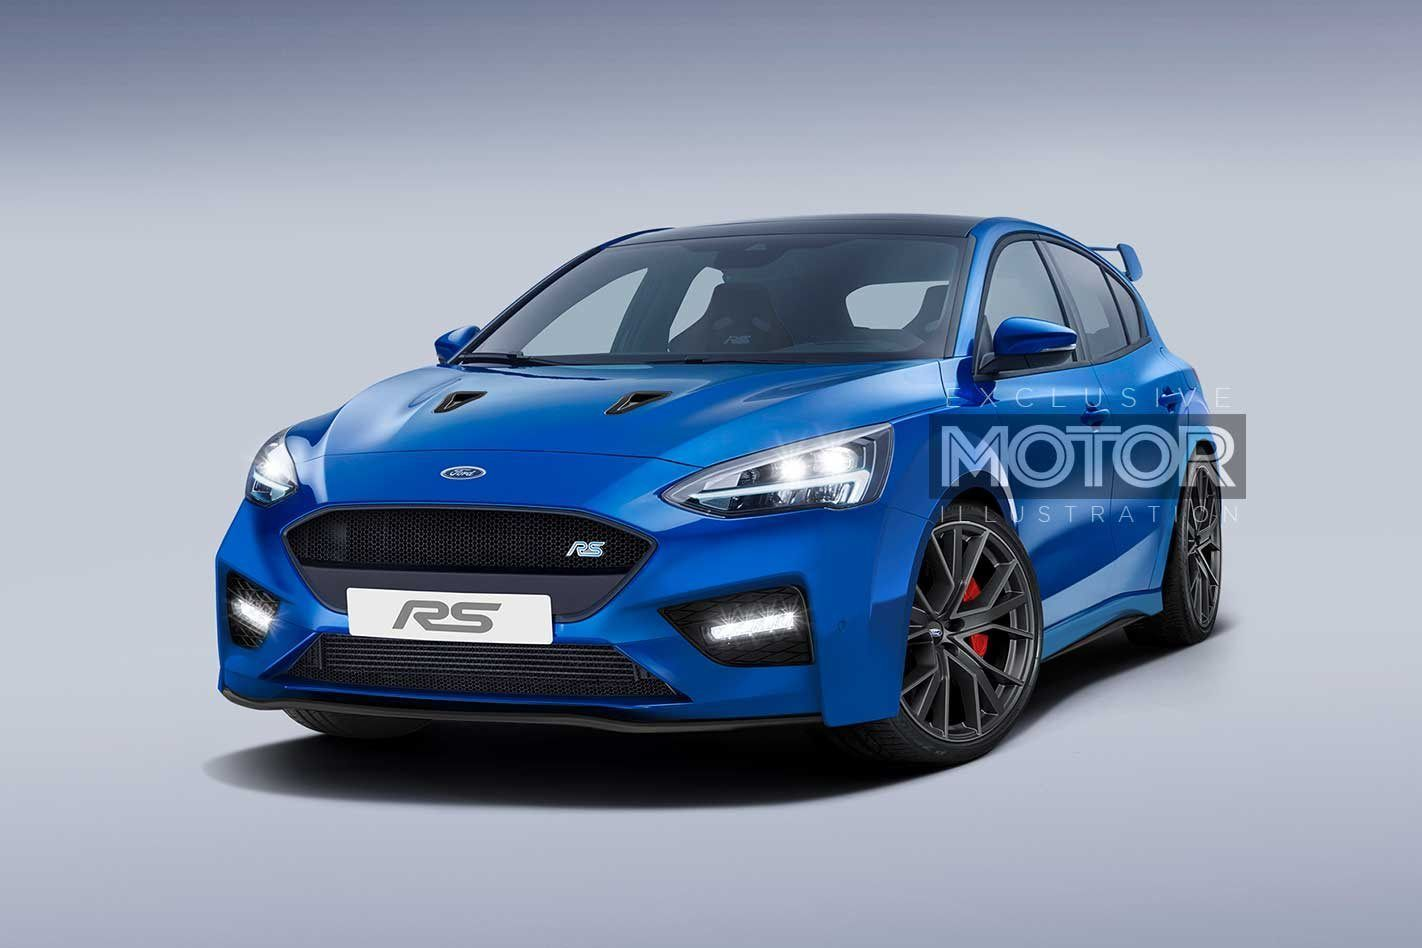 2020 Ford Fiesta St Rs New Review Ford Fiesta Ford Fiesta St